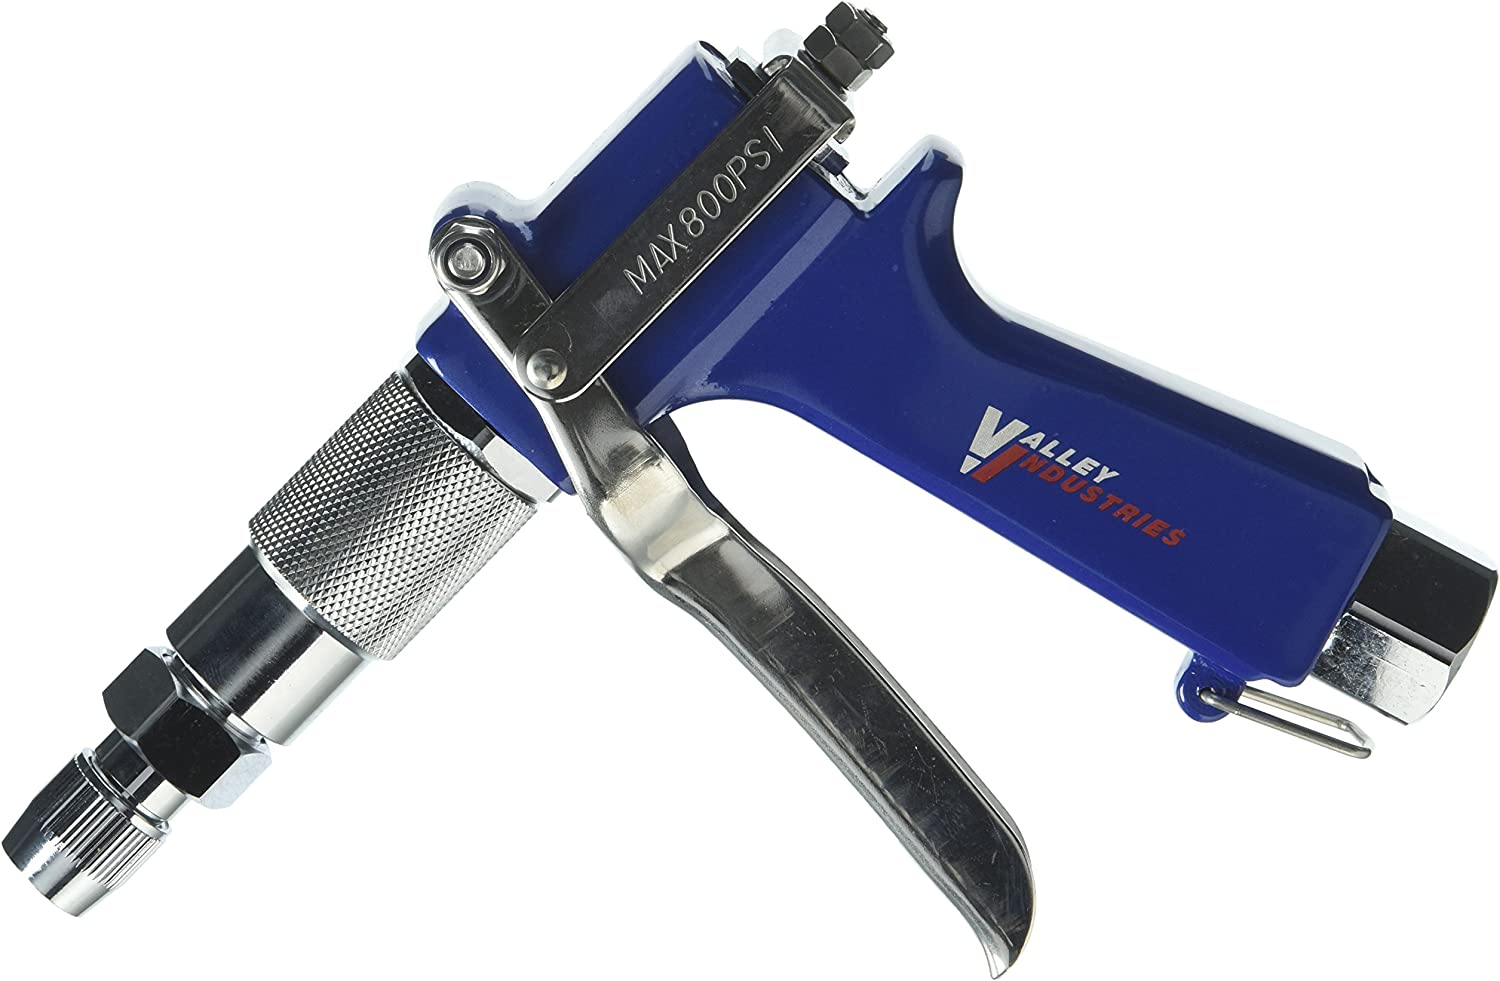 Valley Industries SG-PC-025 High Pressure Jet Spray Gun-800 PSI